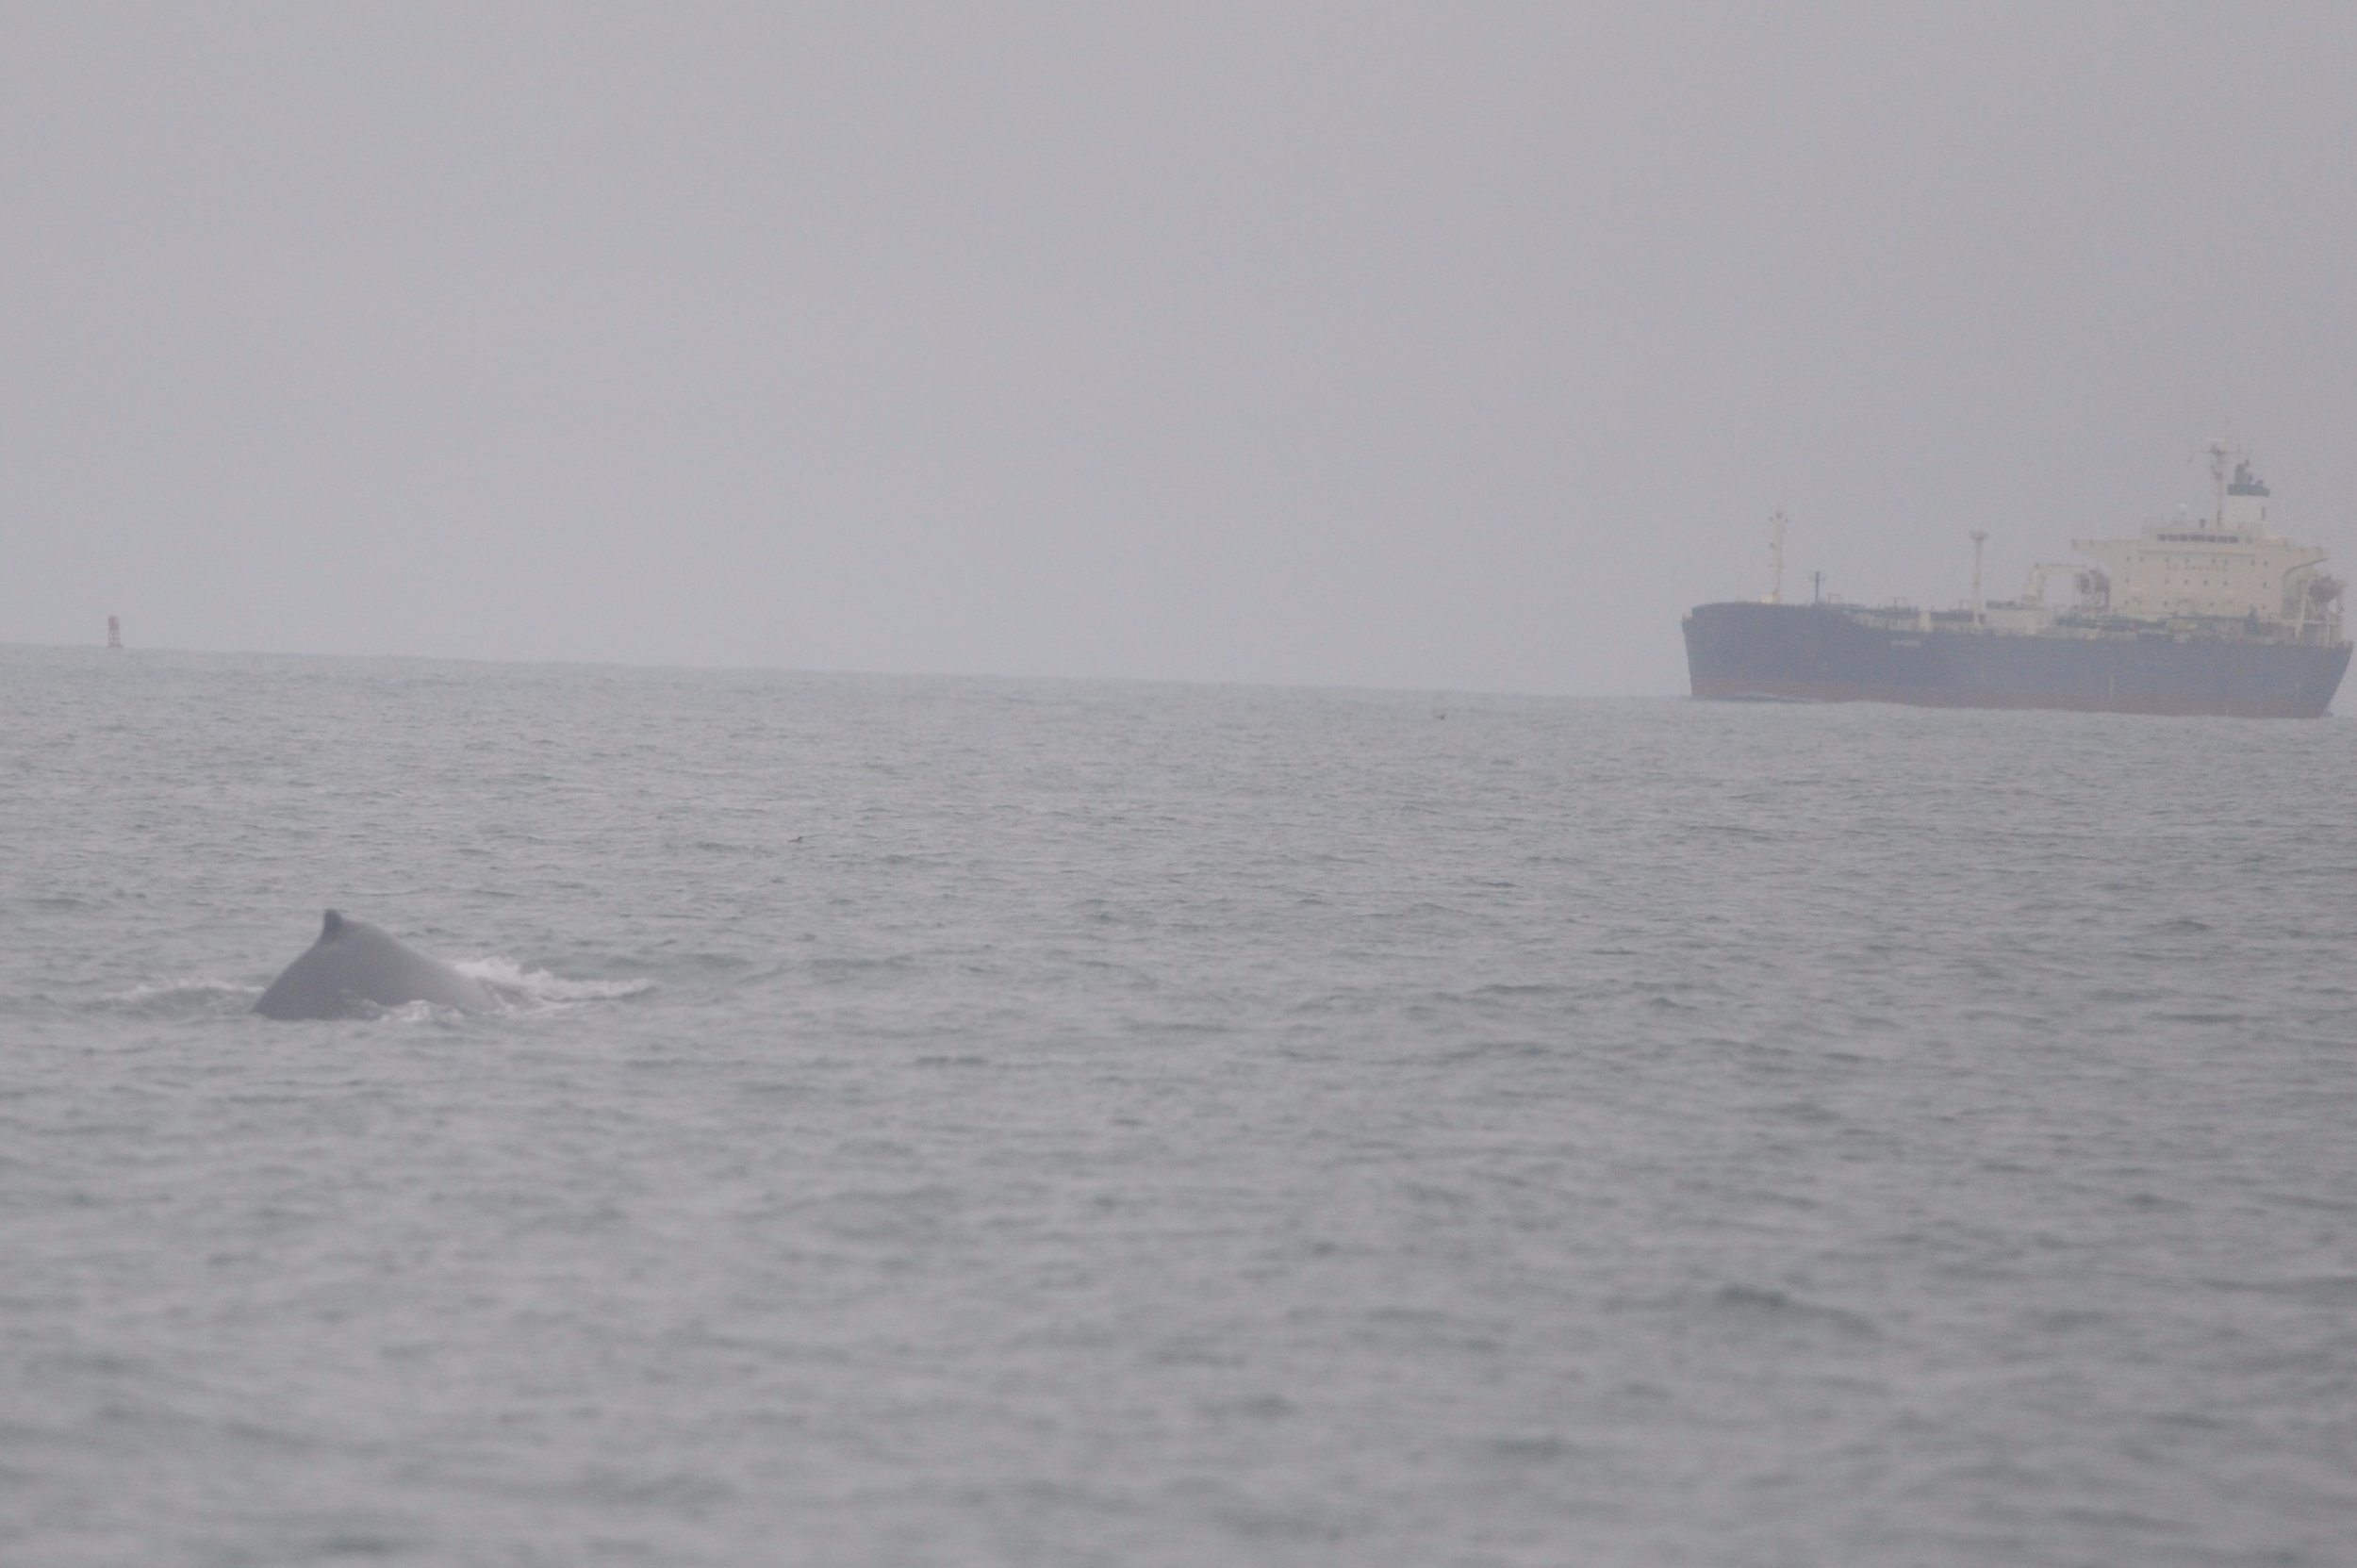 Humpback whale doing shallow dives as a large ship approaches San Francisco.